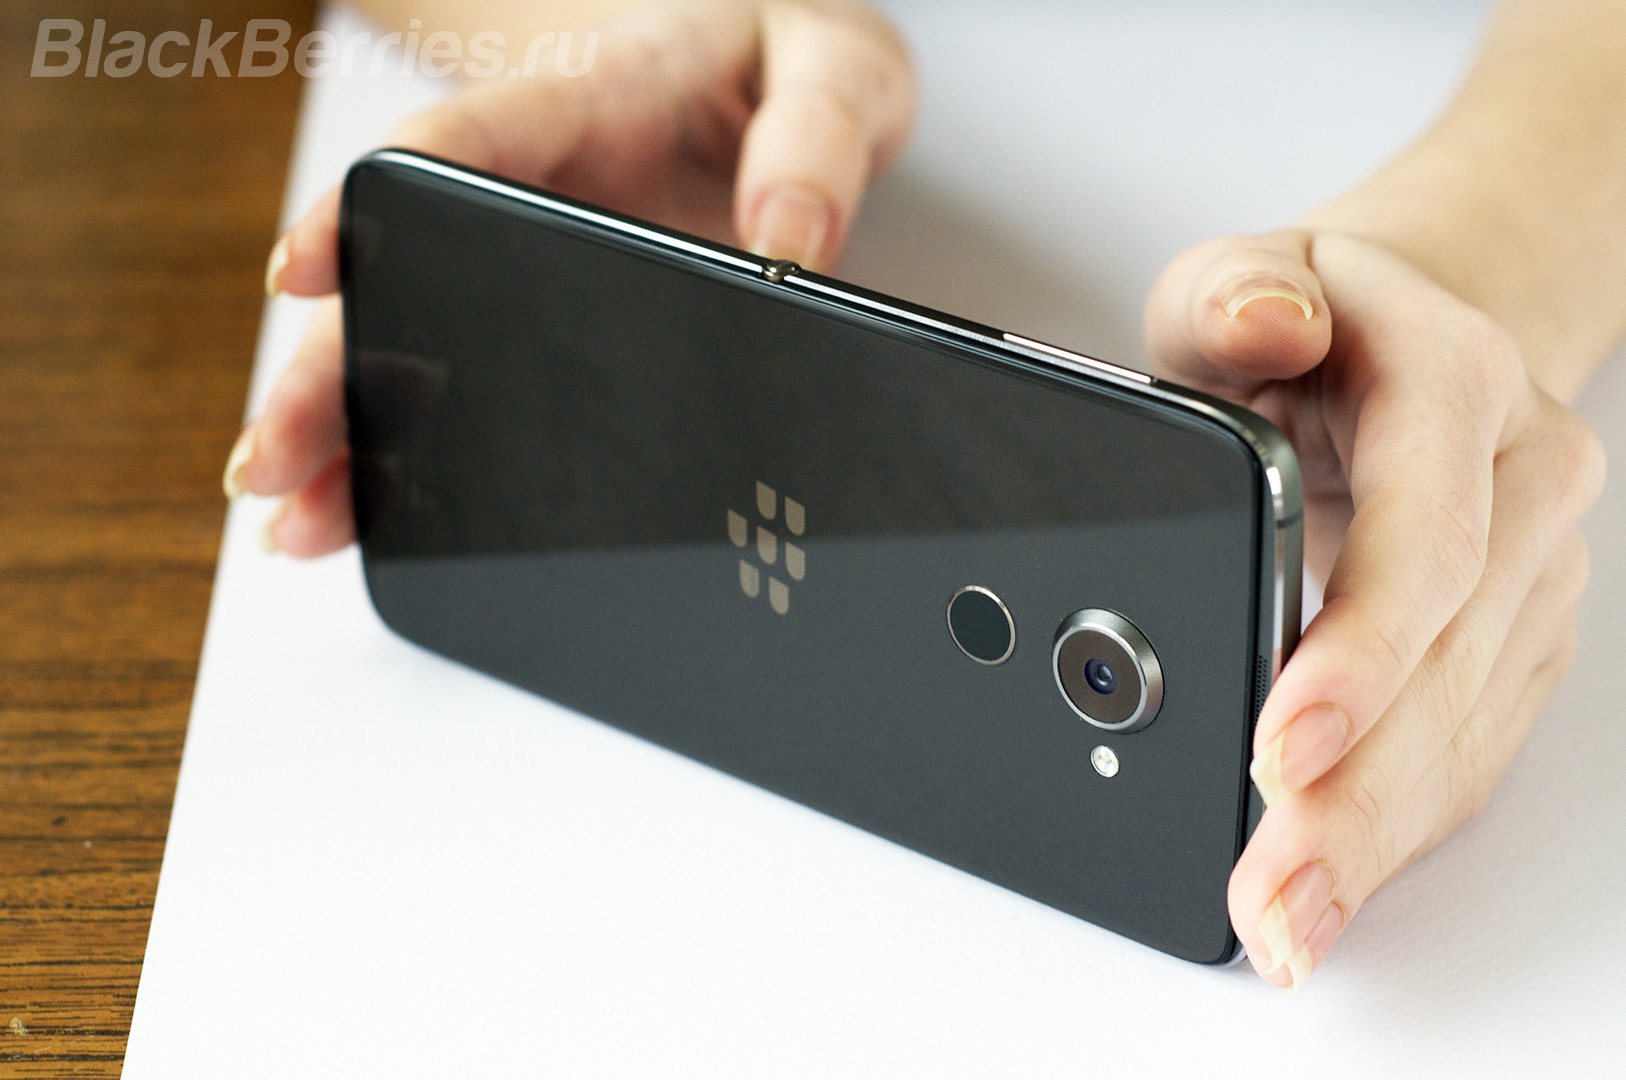 blackberry-dtek60-review-61